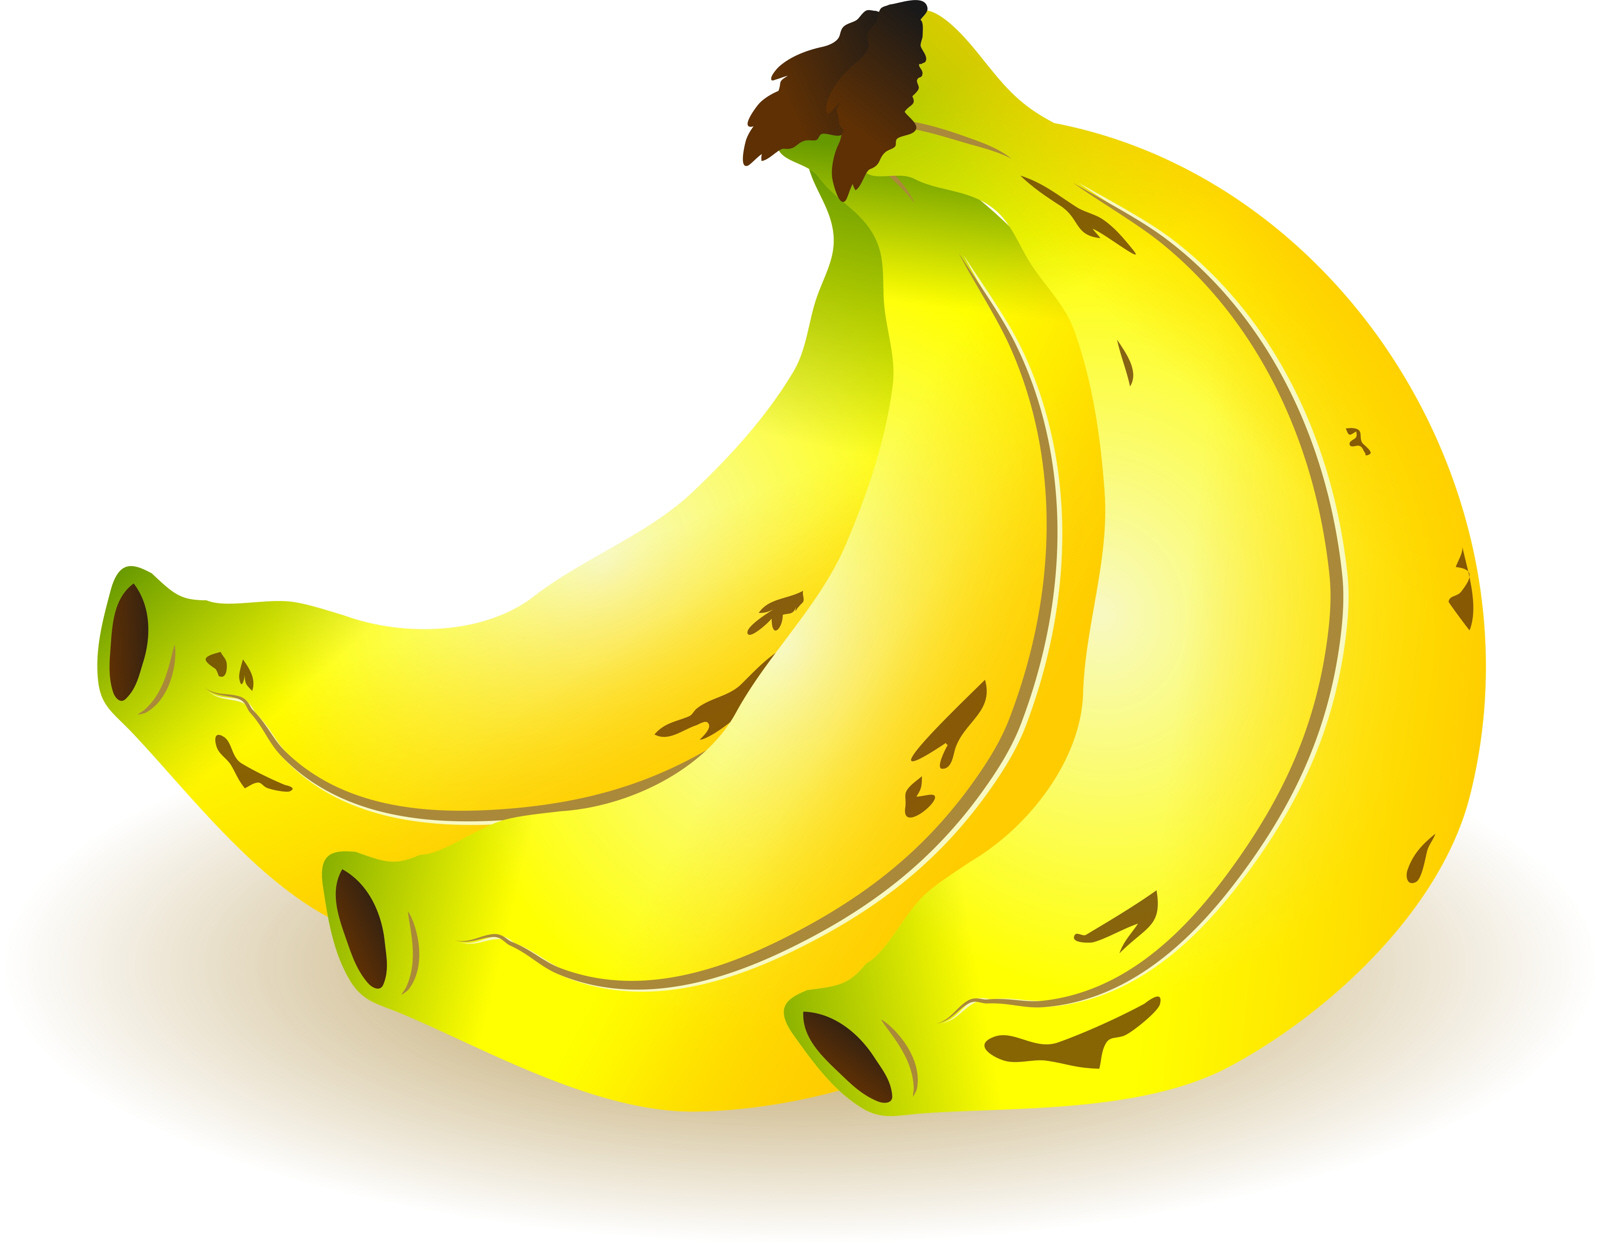 Banana Clipart, Snack, Sweet, Yellow, Graphic, HQ Photo